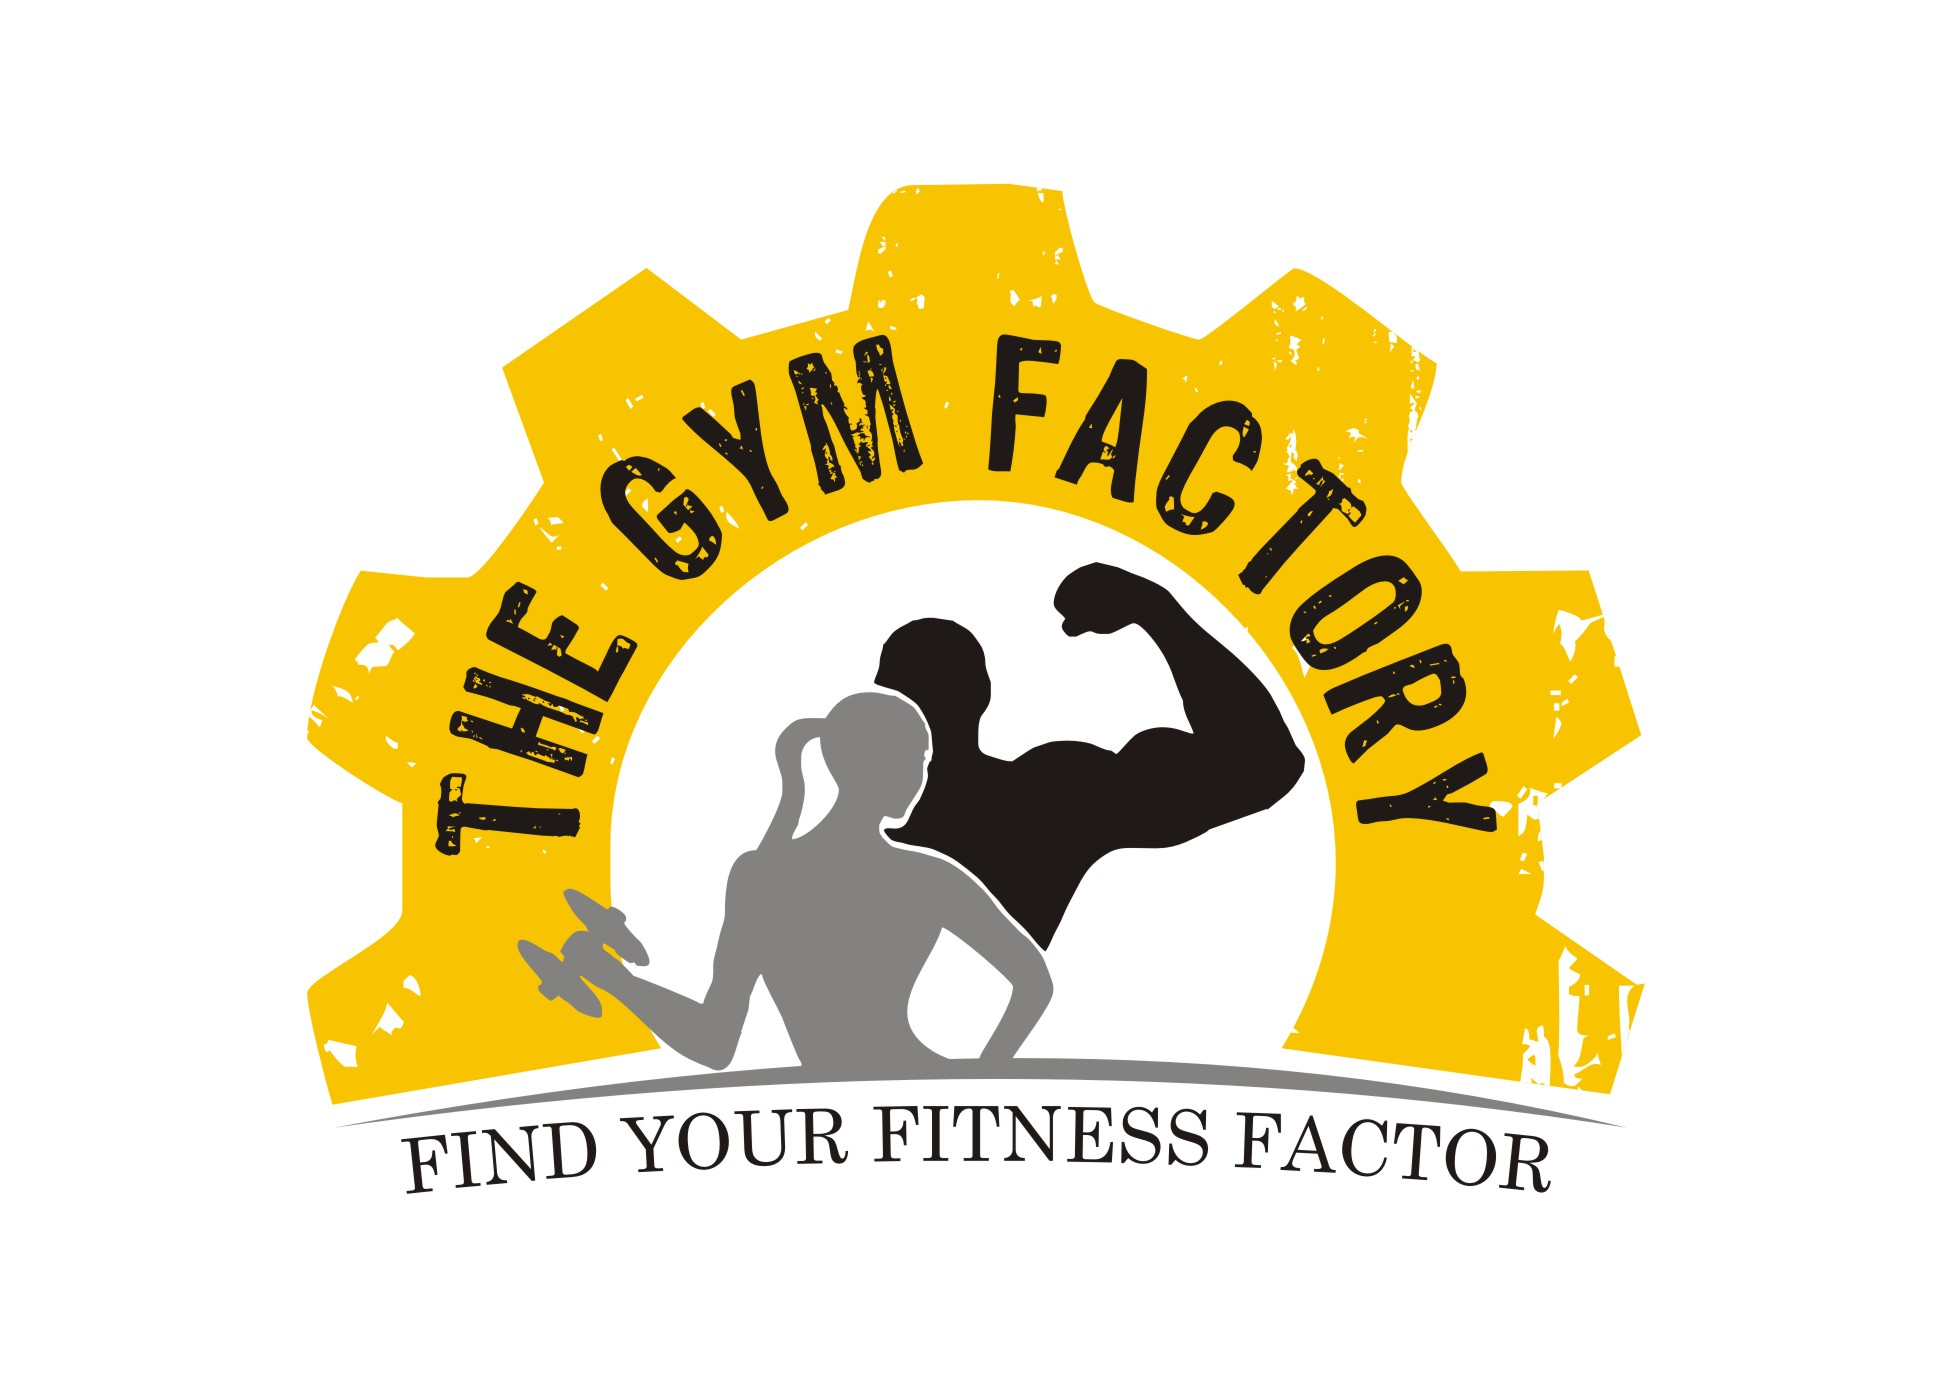 The Gym Factory